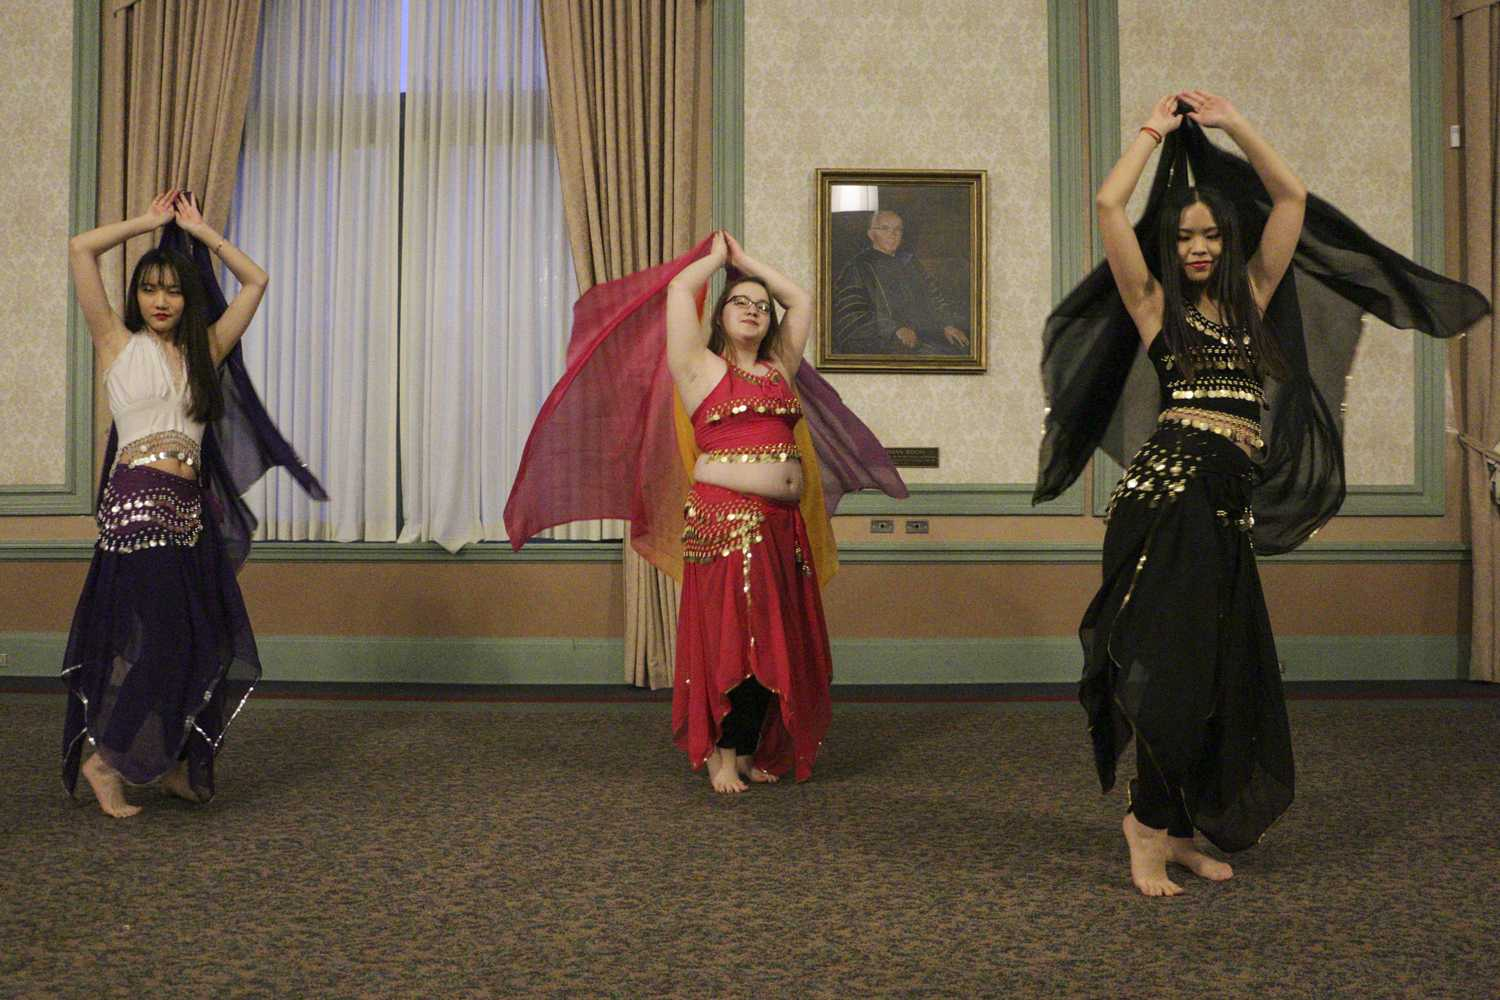 Xinyu Li (left), a senior majoring in microbiology, Victoria Wright, a junior majoring in ecology and evolution, and Ying-Tung Chou (right), a junior majoring in applied developmental psychology, represent Panther Belly Dancers and perform a traditional belly dance at the A Night in Beirut event in the William Pitt Union Monday night. (Photo by Isabelle Glatts | Assistant Visual Editor)